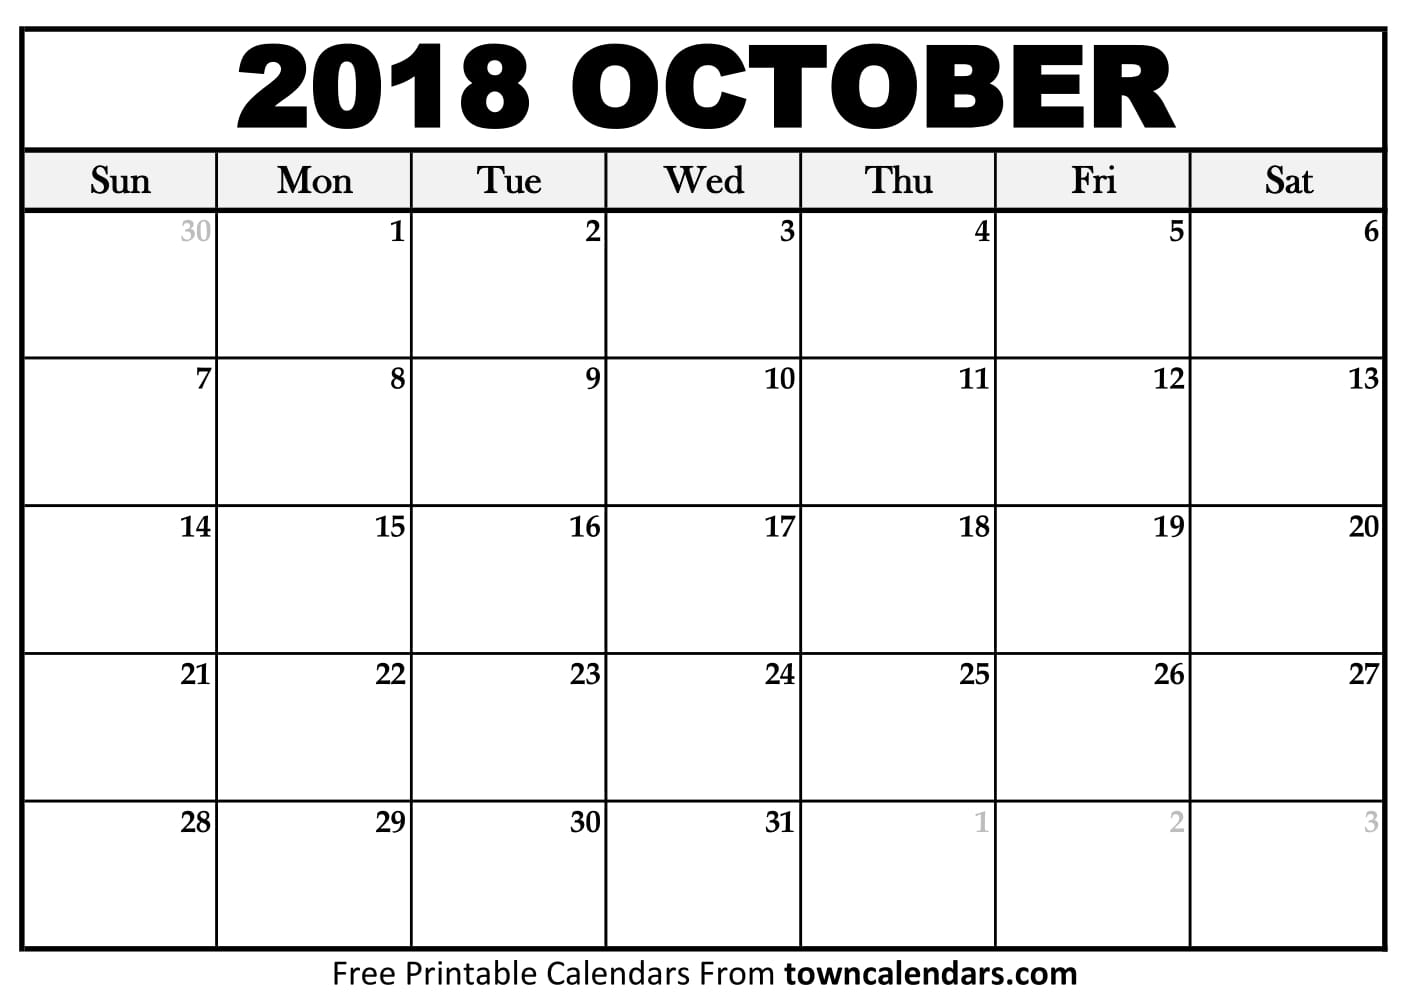 picture relating to Free Printable October Calendars called Oct 2018 Calendar - Free of charge Down load